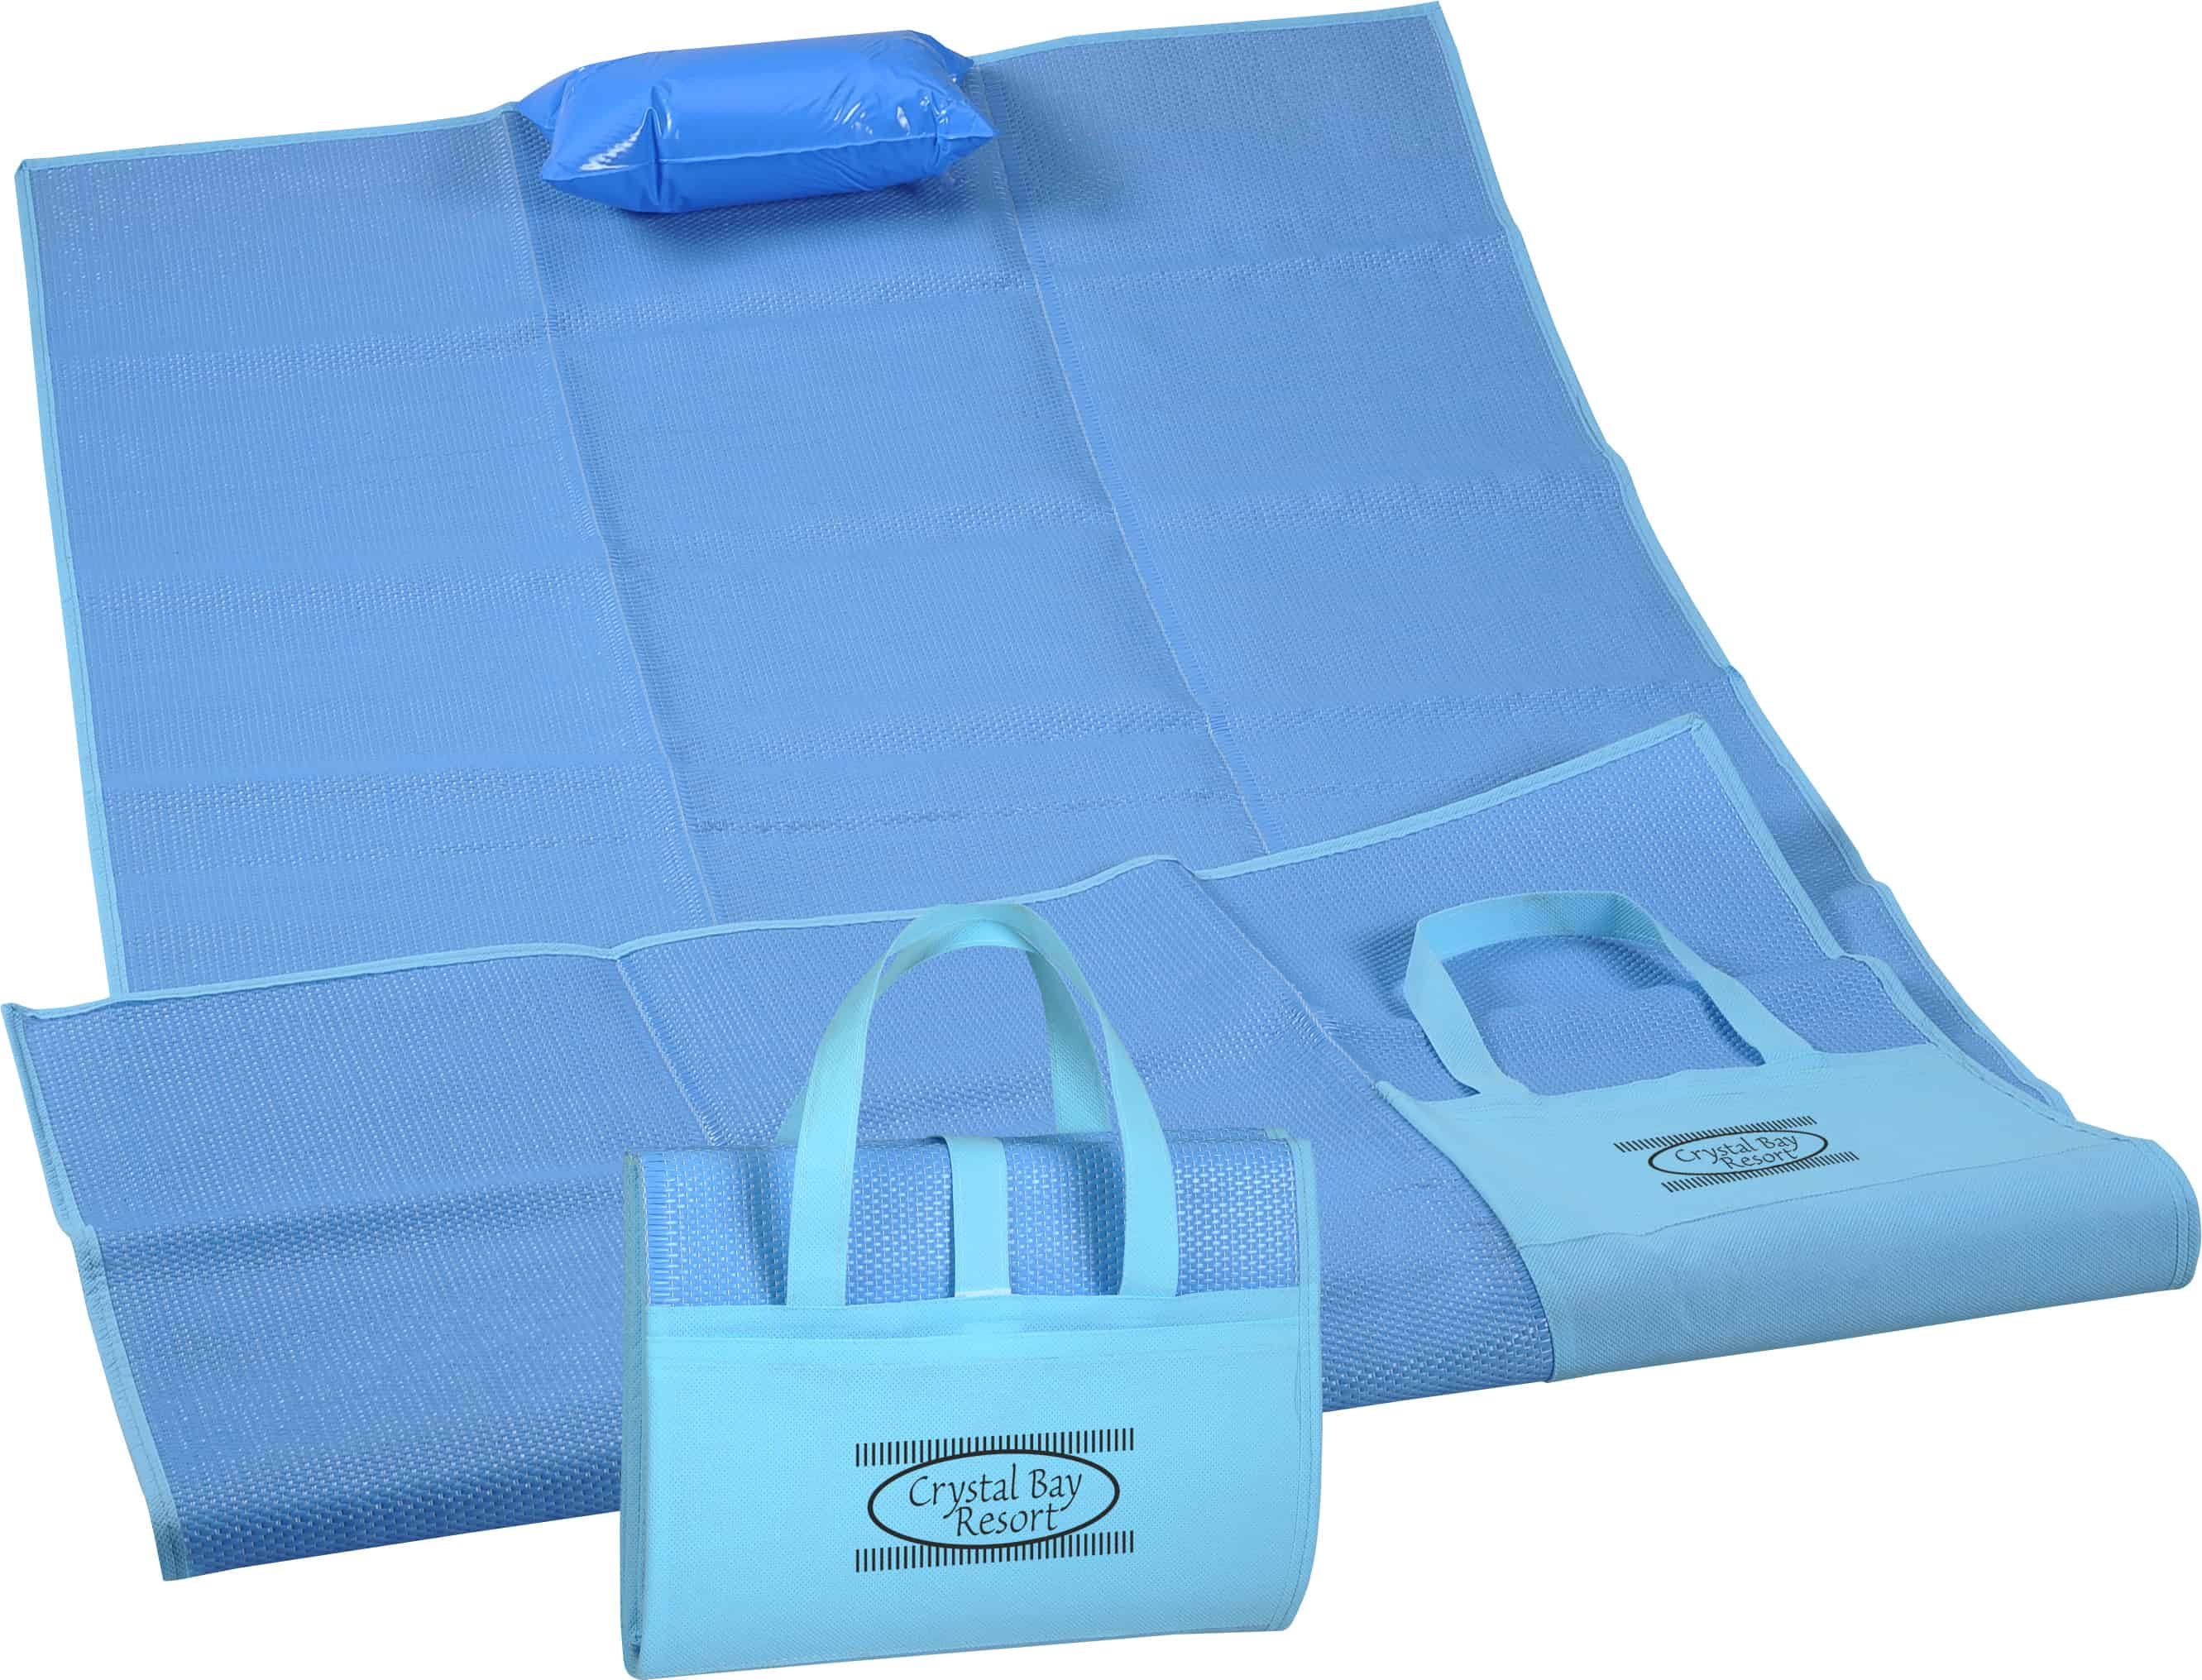 A blue Surf & Sand Beach Mat with inflatable pillow.